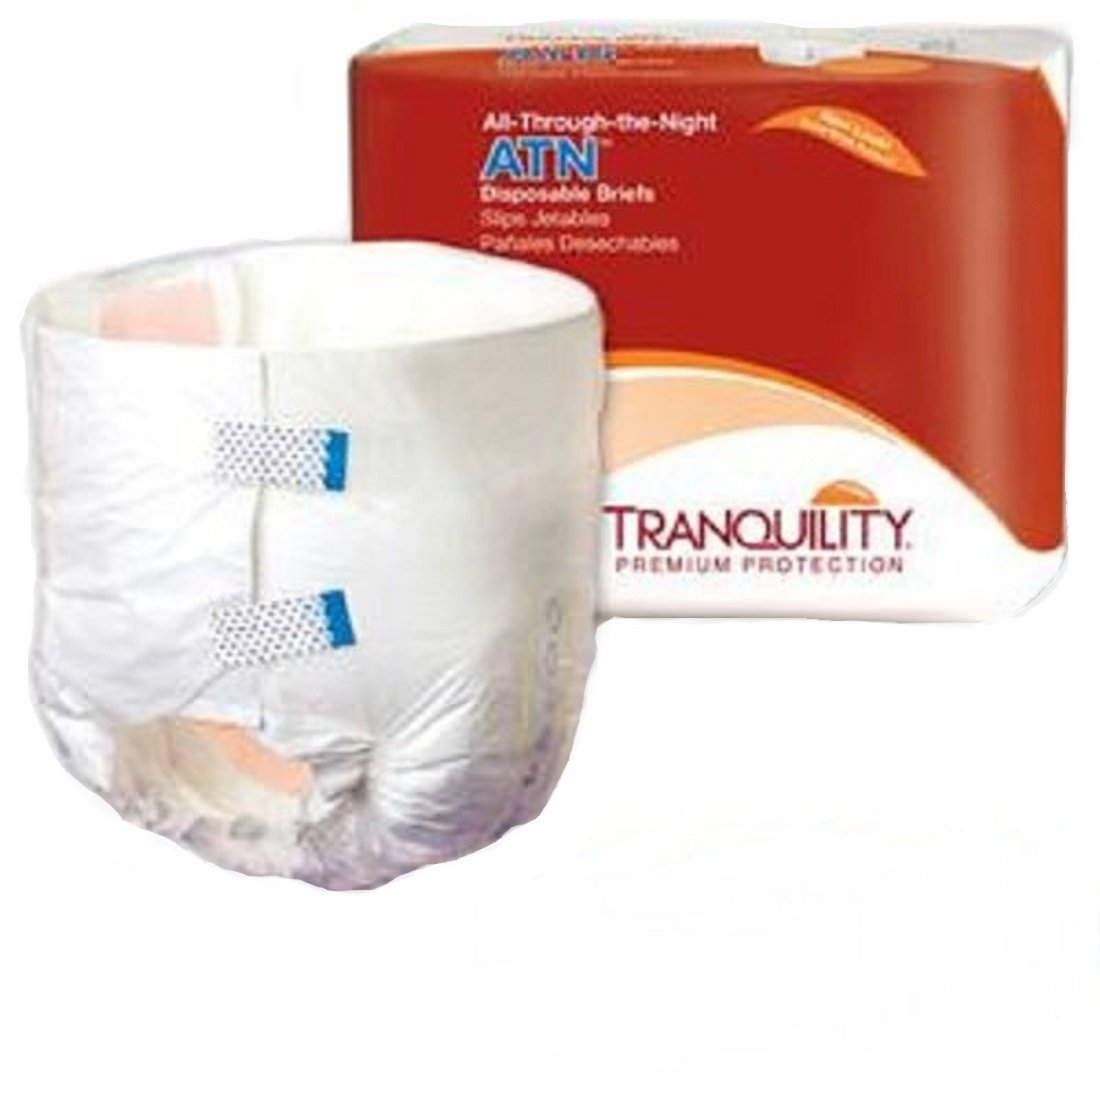 Tranquility ATN Disposable Briefs 24-32'', Small, 100 Per Case